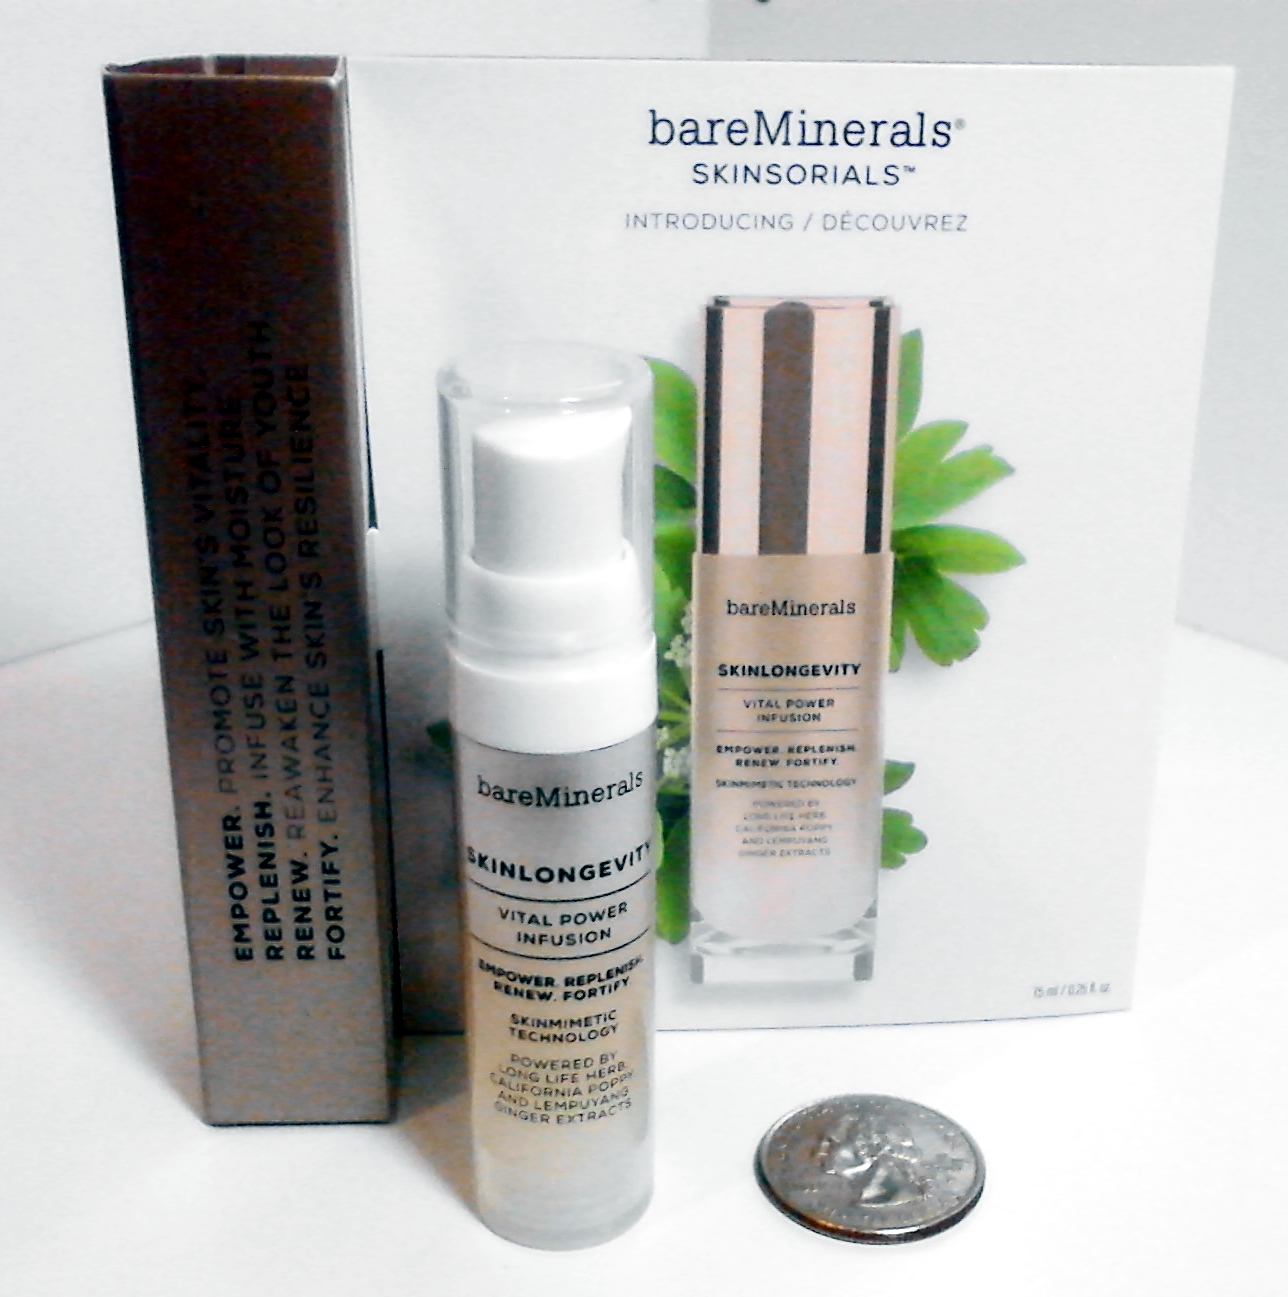 Bare Minerals SKINSORIALS SKINLONGEVITY Vital Power Infusion DELUXE SAMPLE SIZE